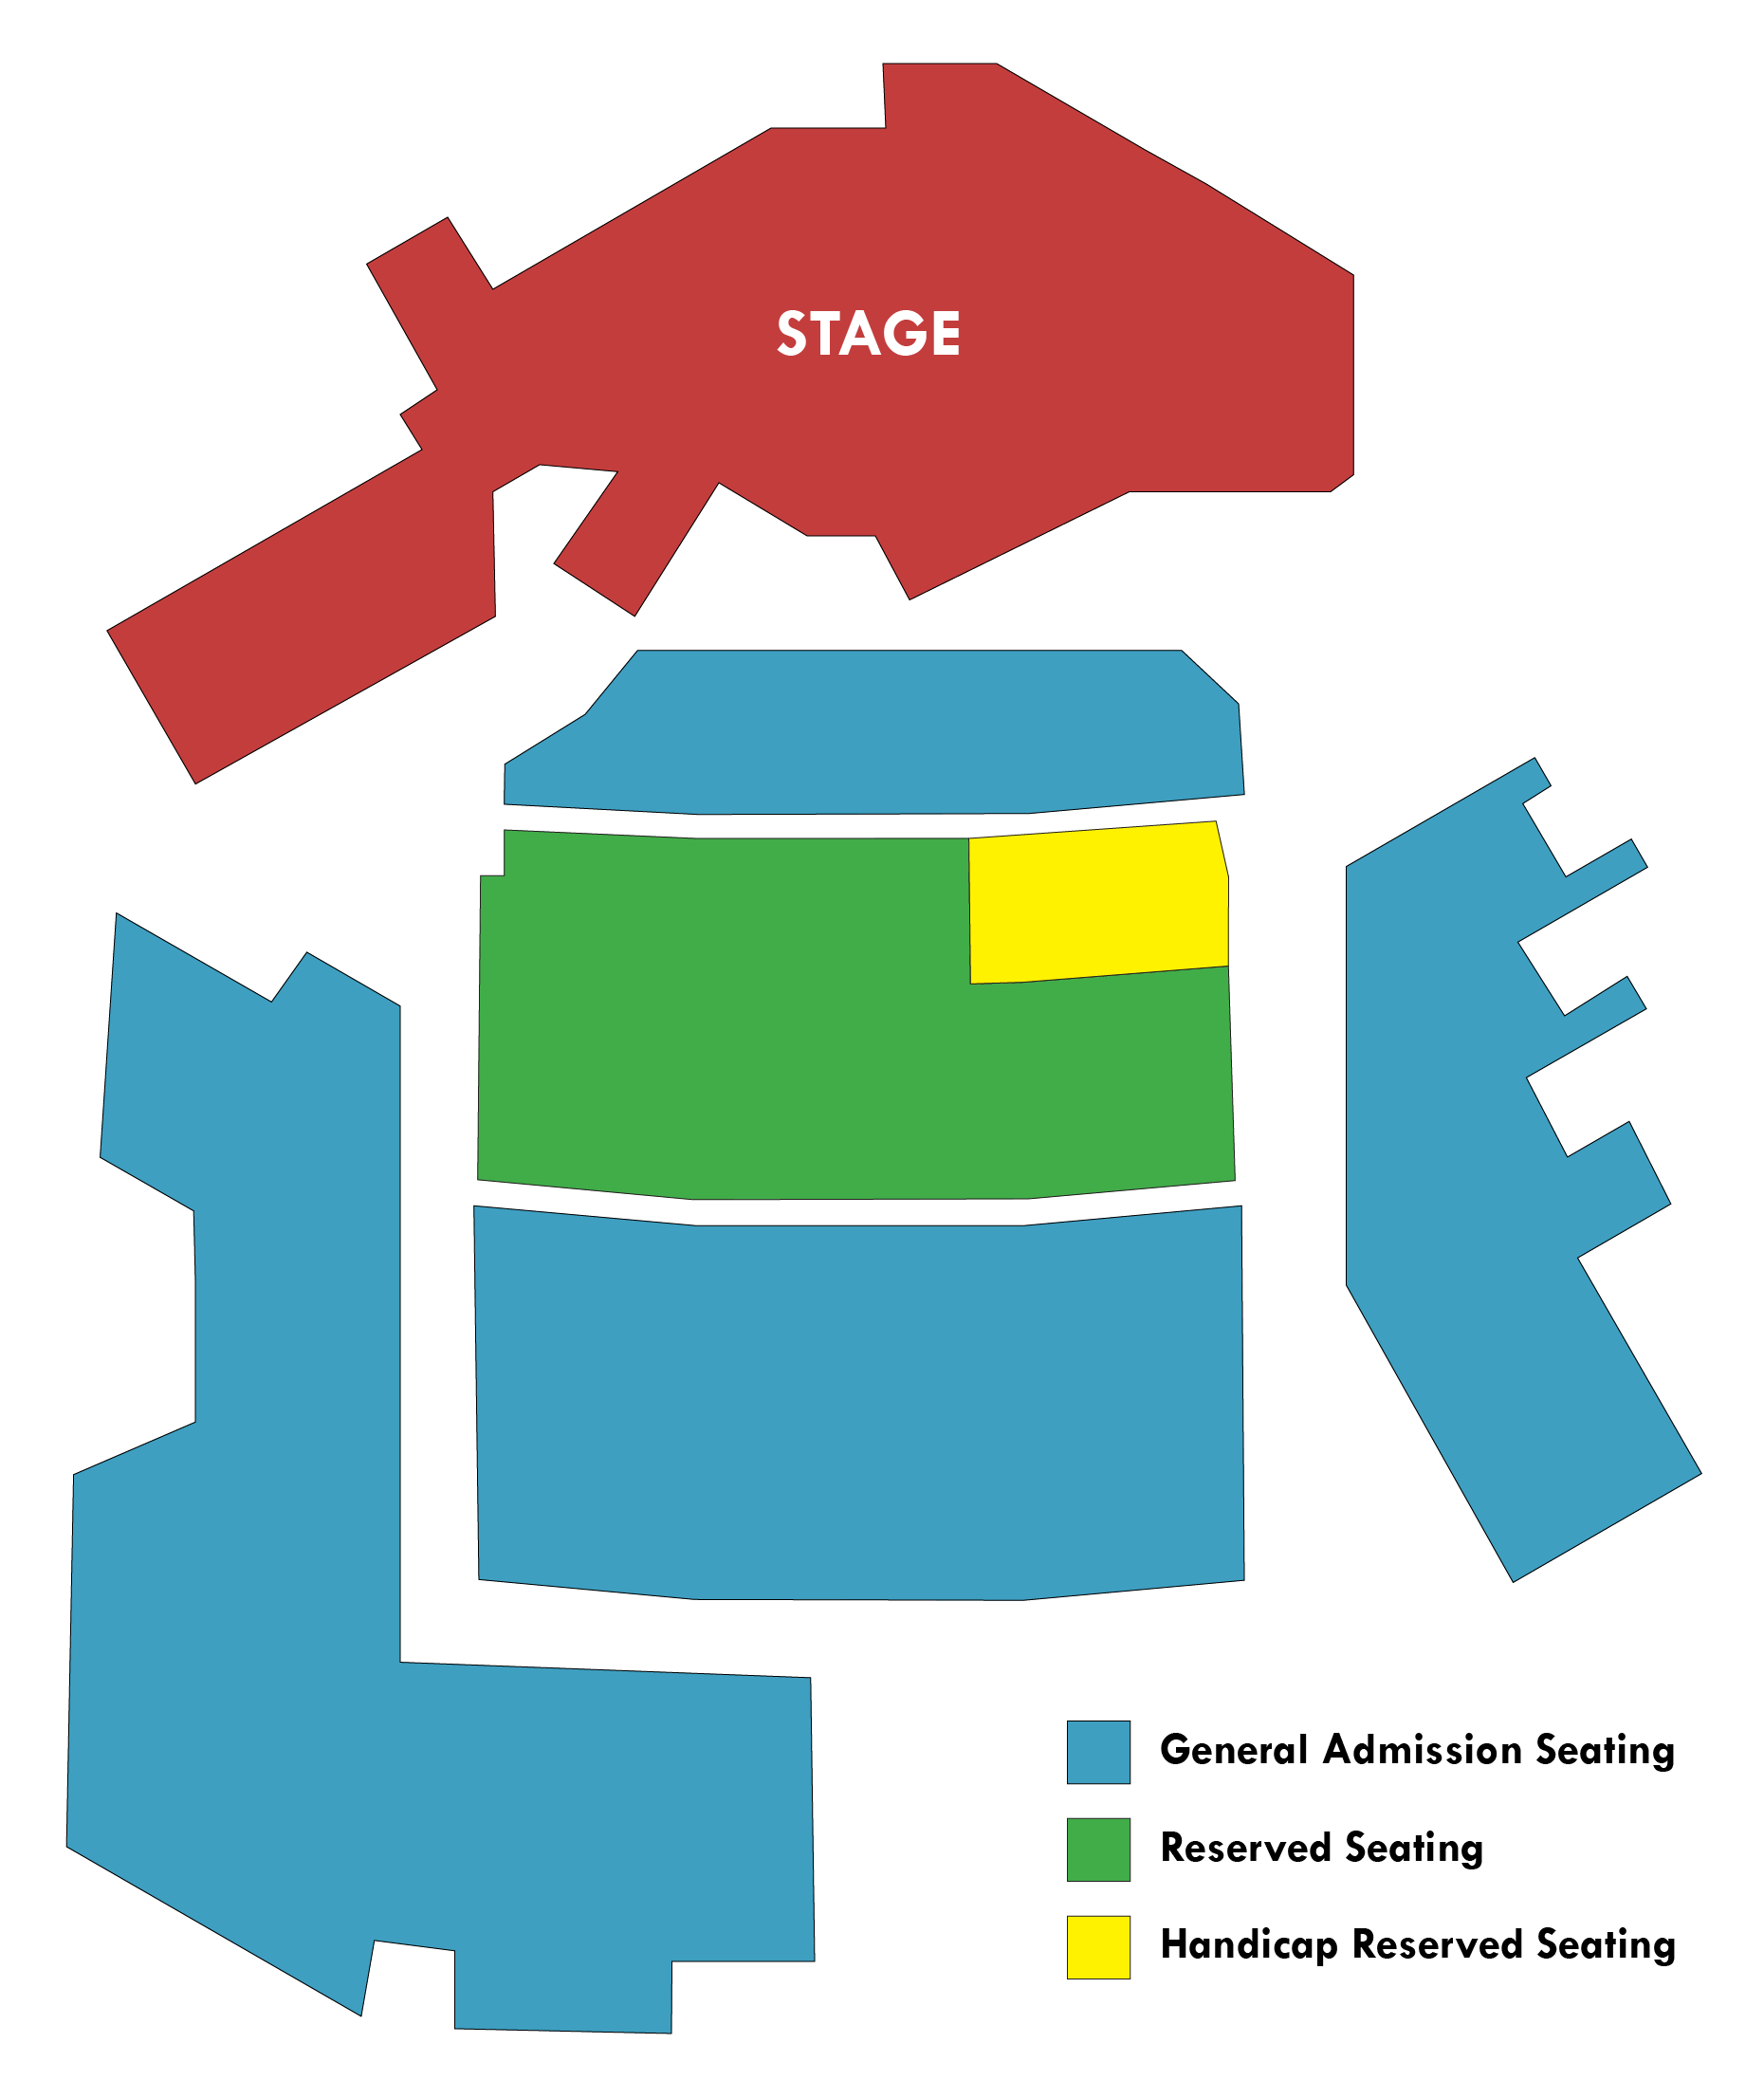 Seating charts northern sky. Lighting clipart stage direction